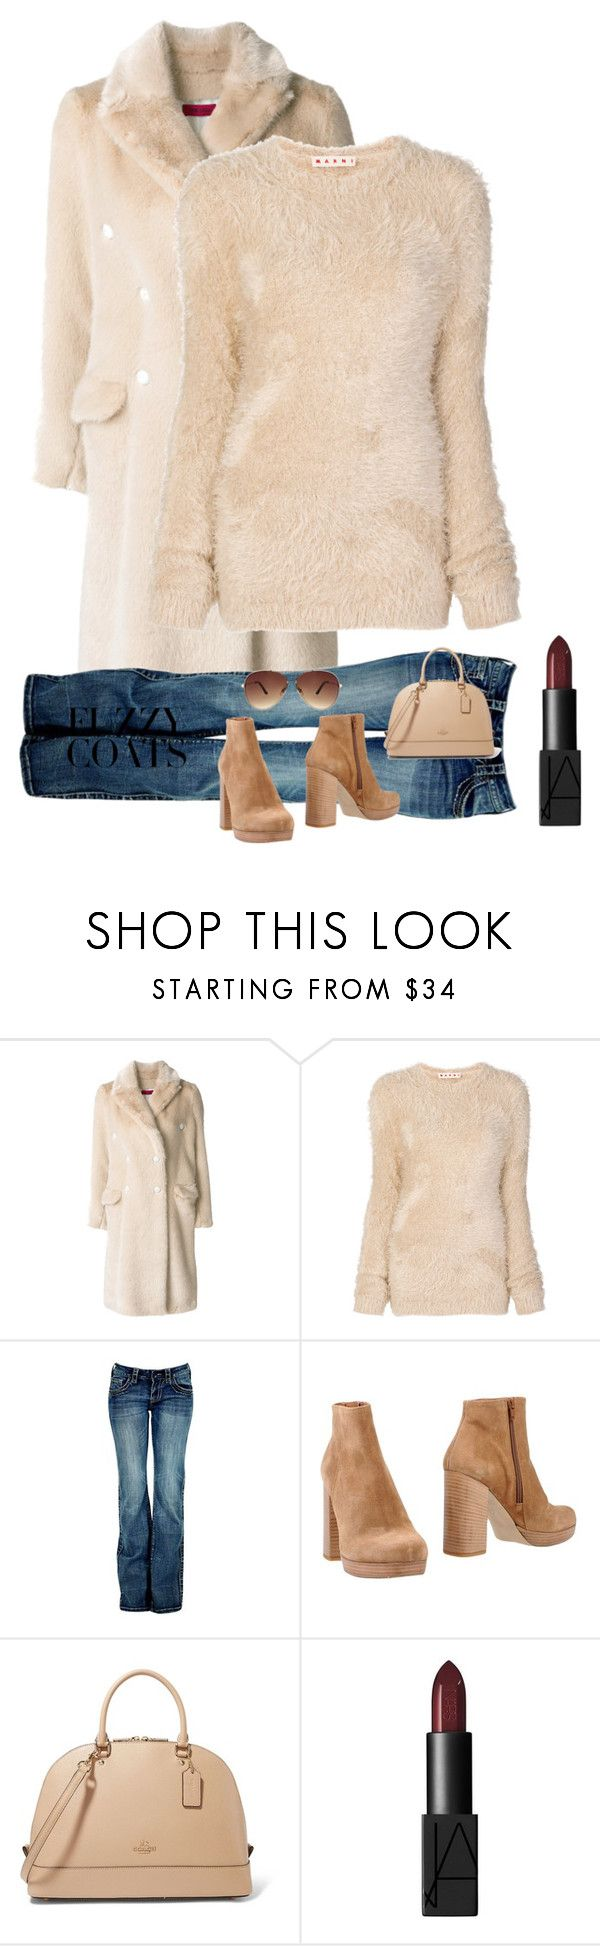 """""""Fuzzy Coats"""" by kotnourka ❤ liked on Polyvore featuring The Gigi, Marni, Barbed, UnLace and Ashley Stewart"""